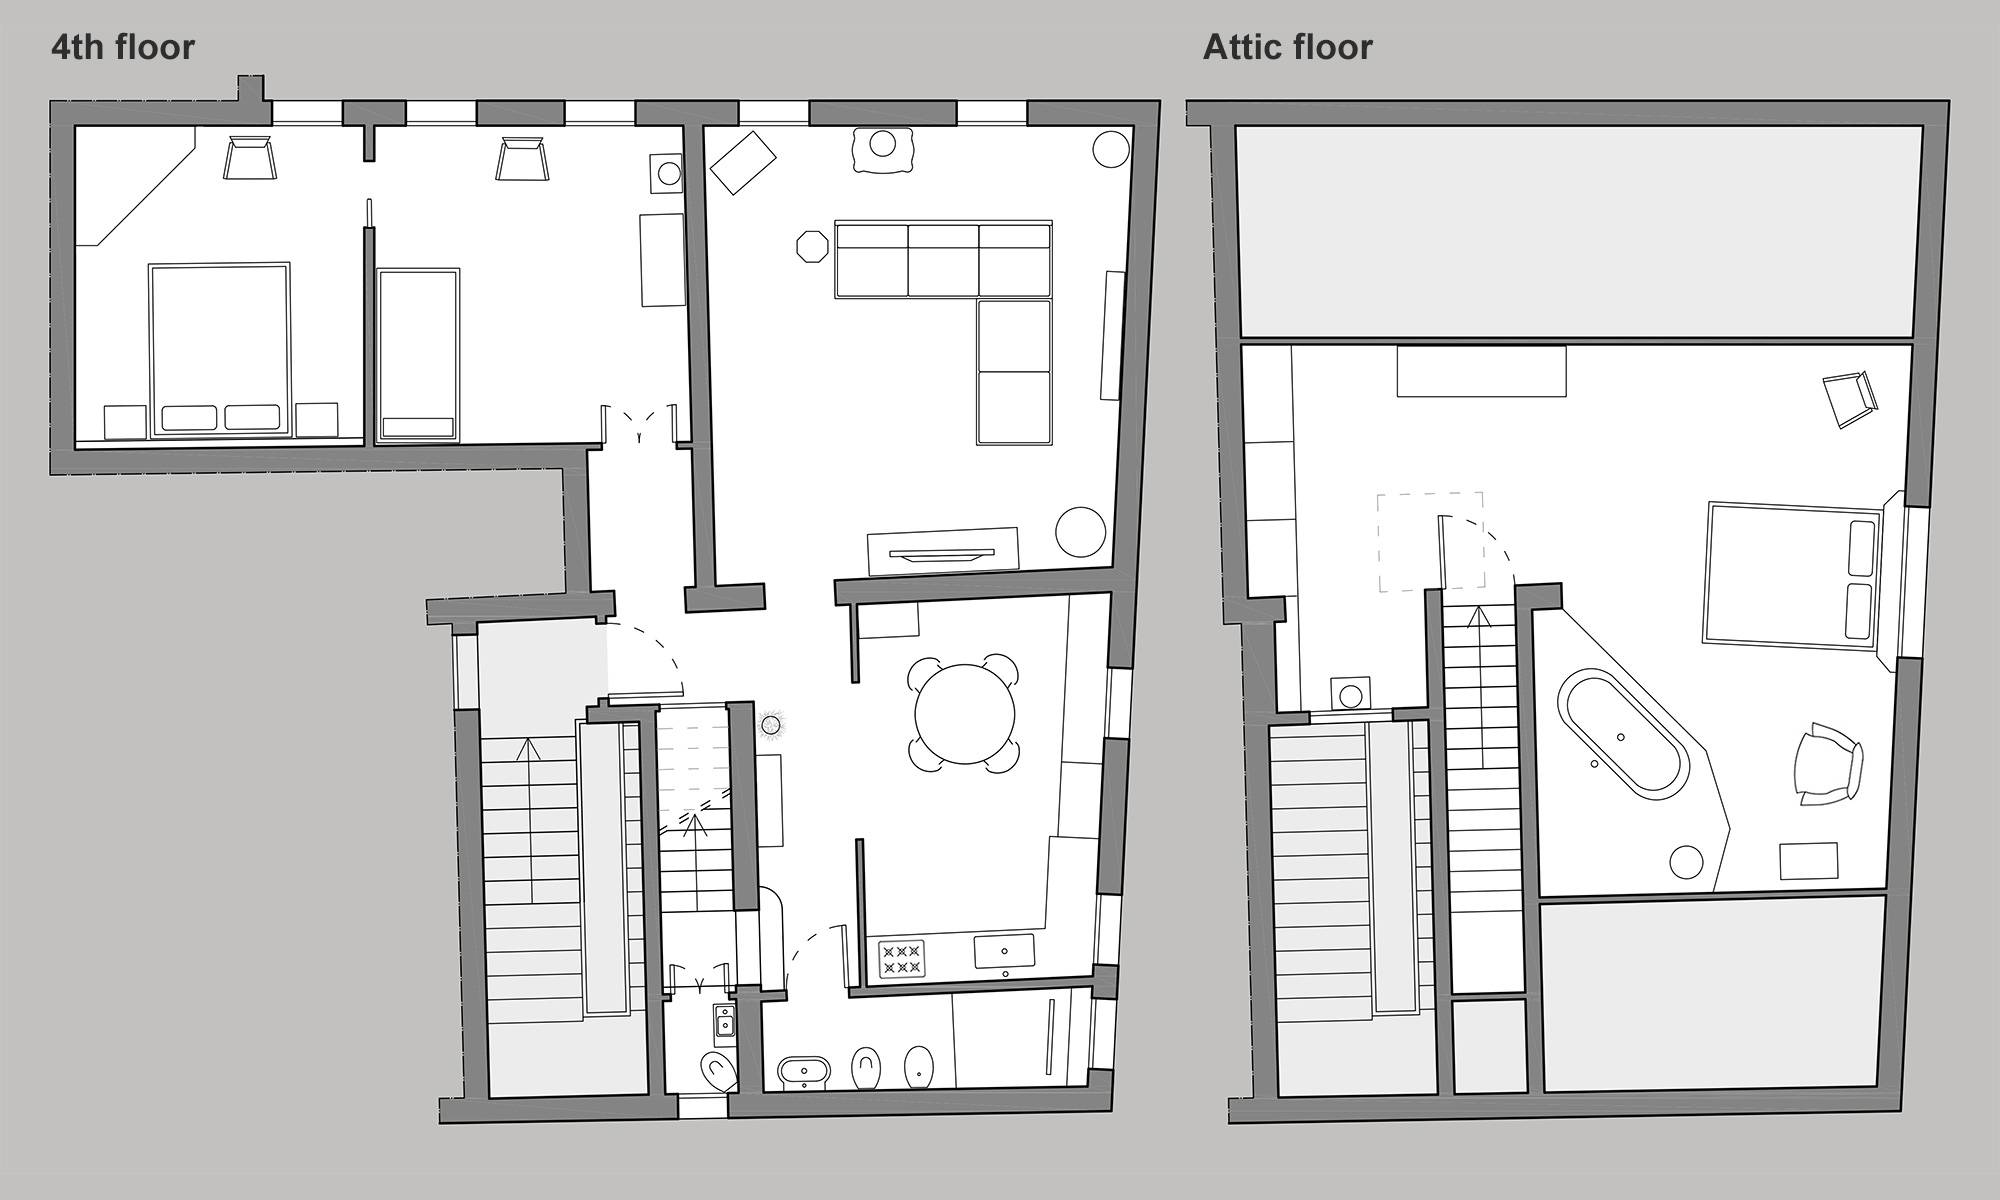 Verdi floor plan